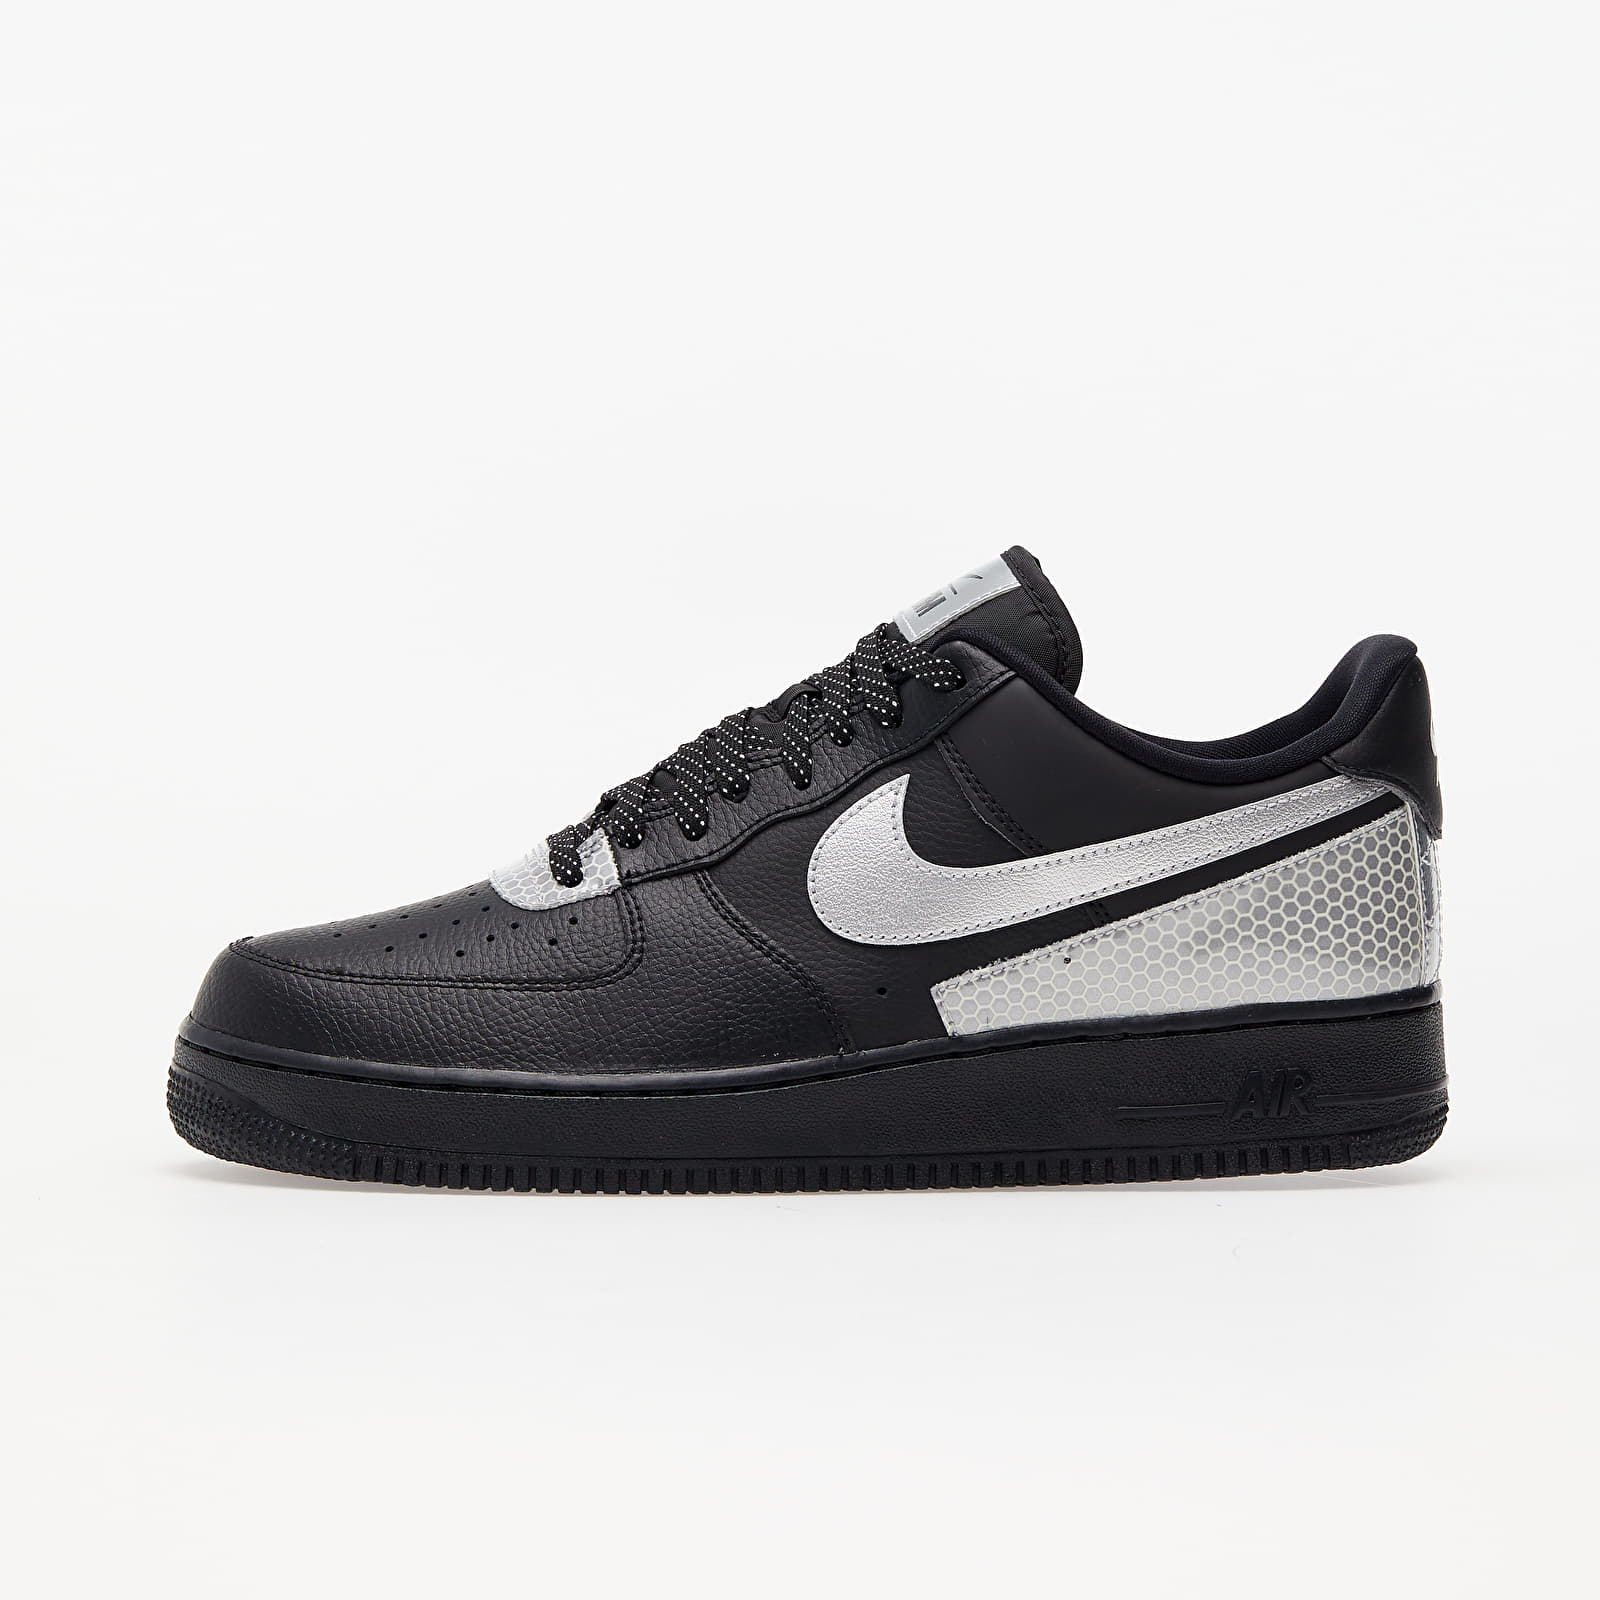 Nike Air Force 1 '07 LV8 3M Black/ Metallic Silver-Black EUR 46